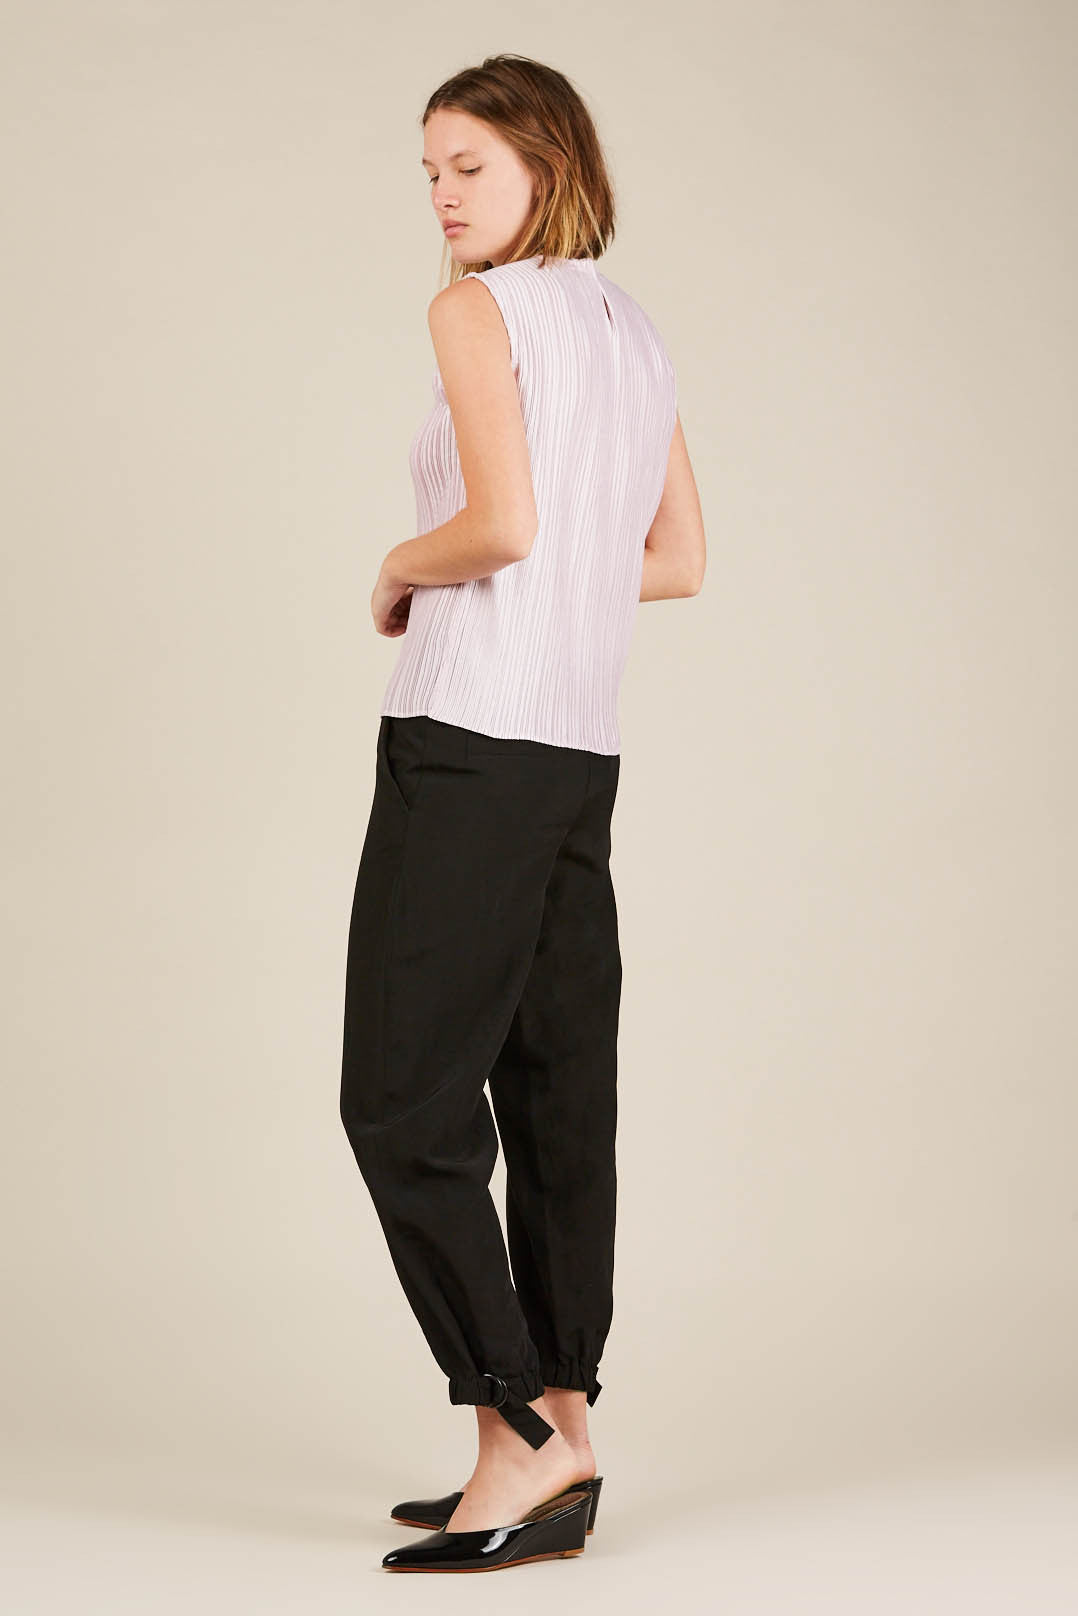 Pine Trouser with Belt Black, Christian Wijnants